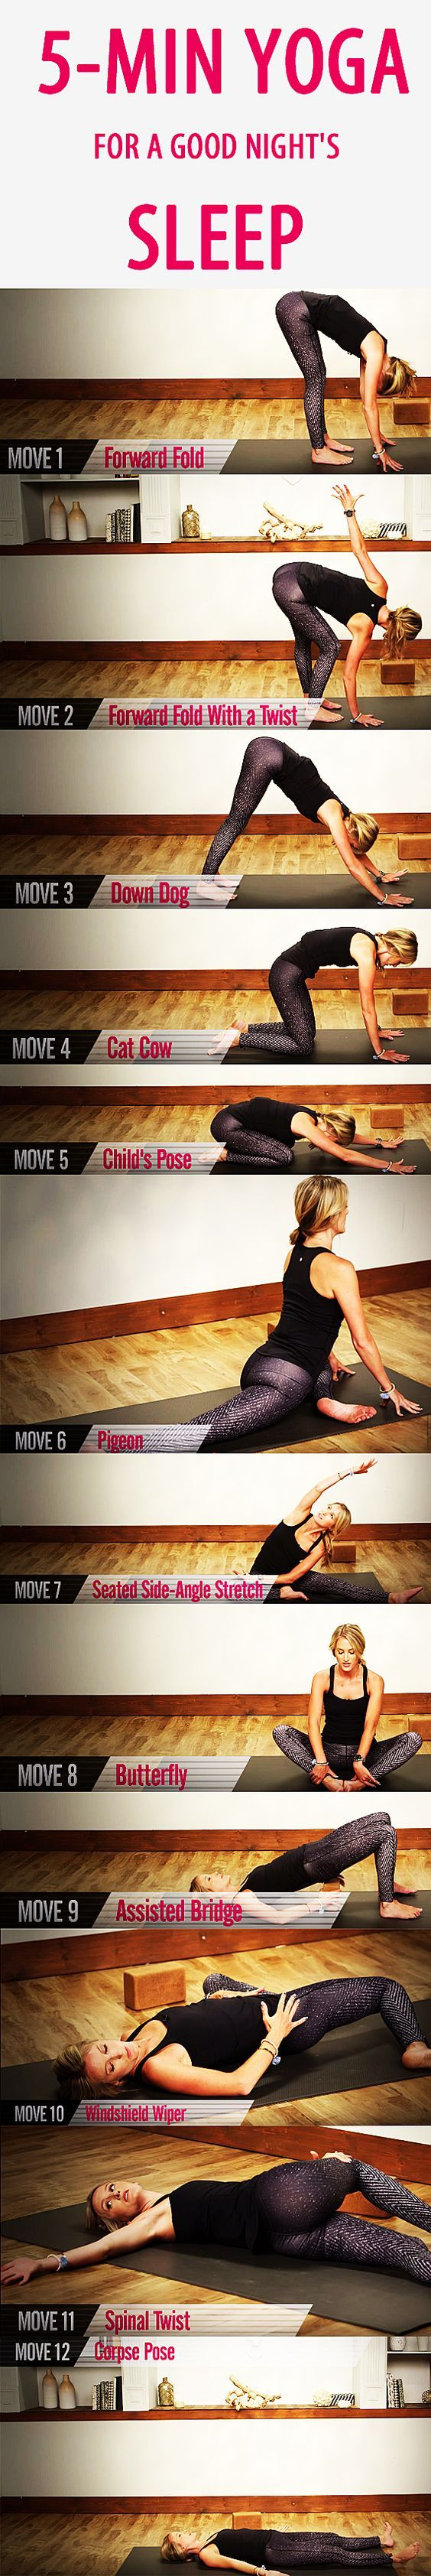 Click To Discover More, 5-minute YOGA routine for a GOOD NIGHT'S SLEEP. Sometimes you have to actively unwind to truly rest up, and a bit of mellow yoga could be your ticket to more restful sleep. This 5-minute sequences designed to relax your body and quiet your mind so you can drift off easily to the land of nod. Put on your PJs, press play, and get ready to chill out. #yoga #yogaposes #bedtimeyoga #bettersleep #beginneryoga , #fitness, #weightloss, #fatloss, #diets, #dietsforwomen, ...